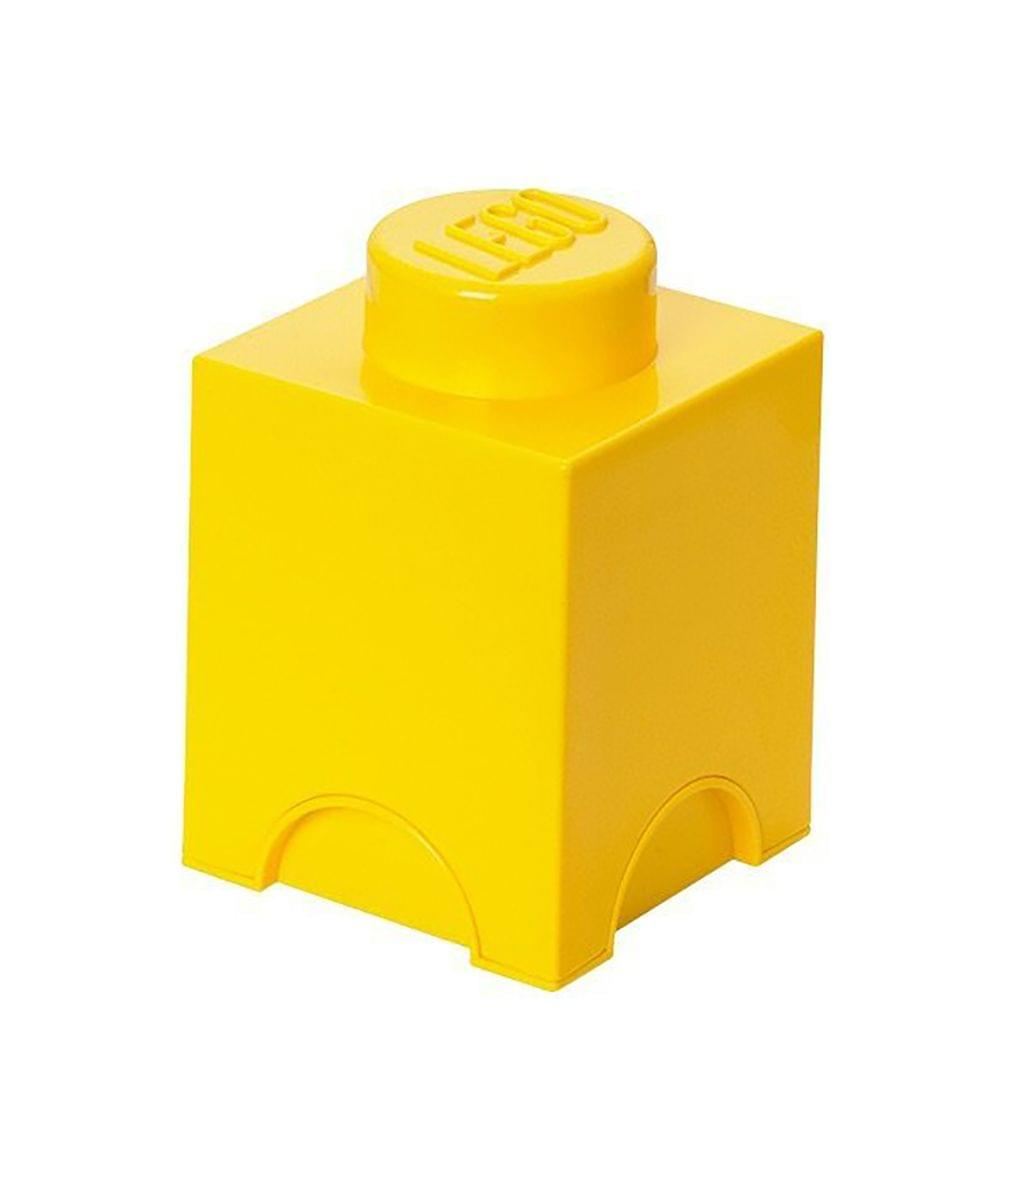 LEGO Storage Brick 1, Bright Yellow